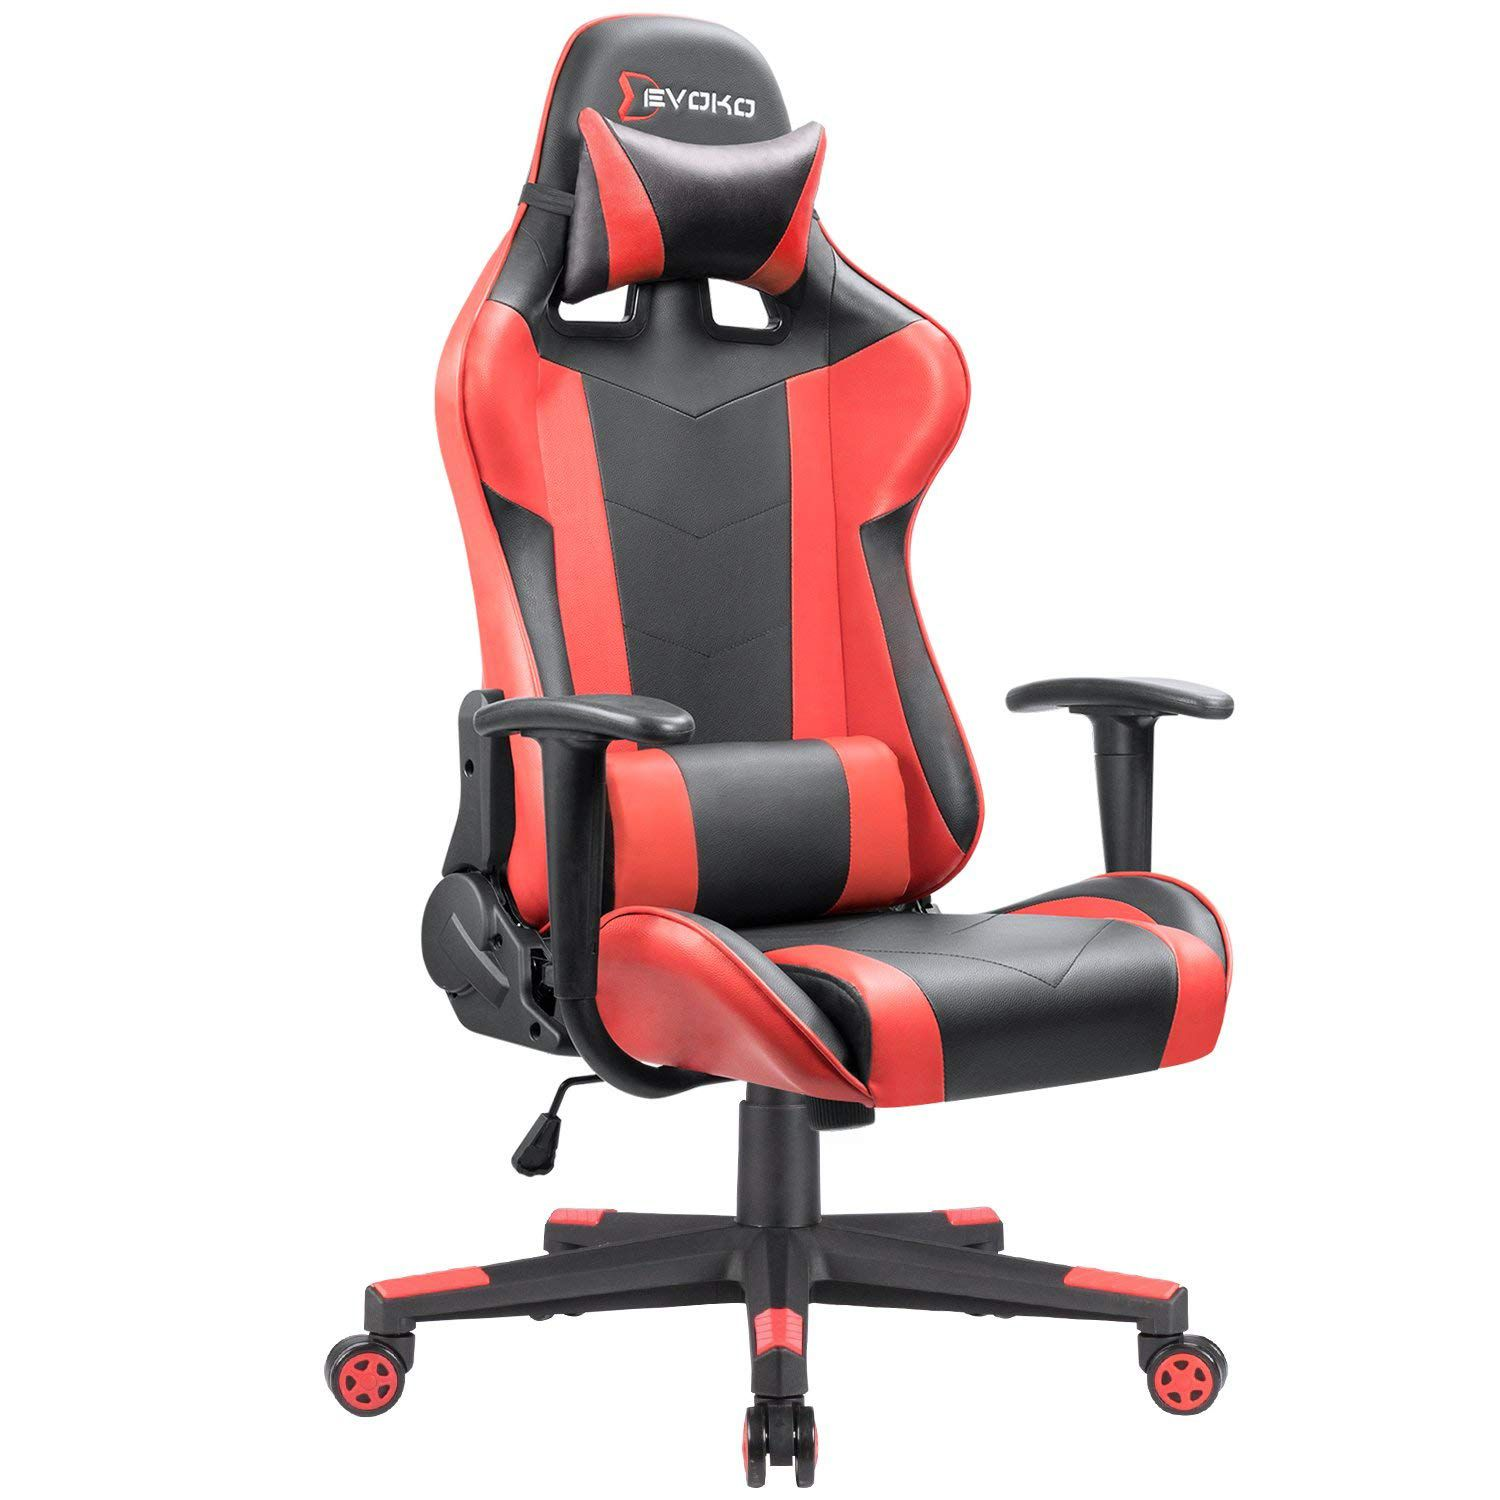 Top 10 Best Gaming Chairs in 2020 Reviews Gaming chair